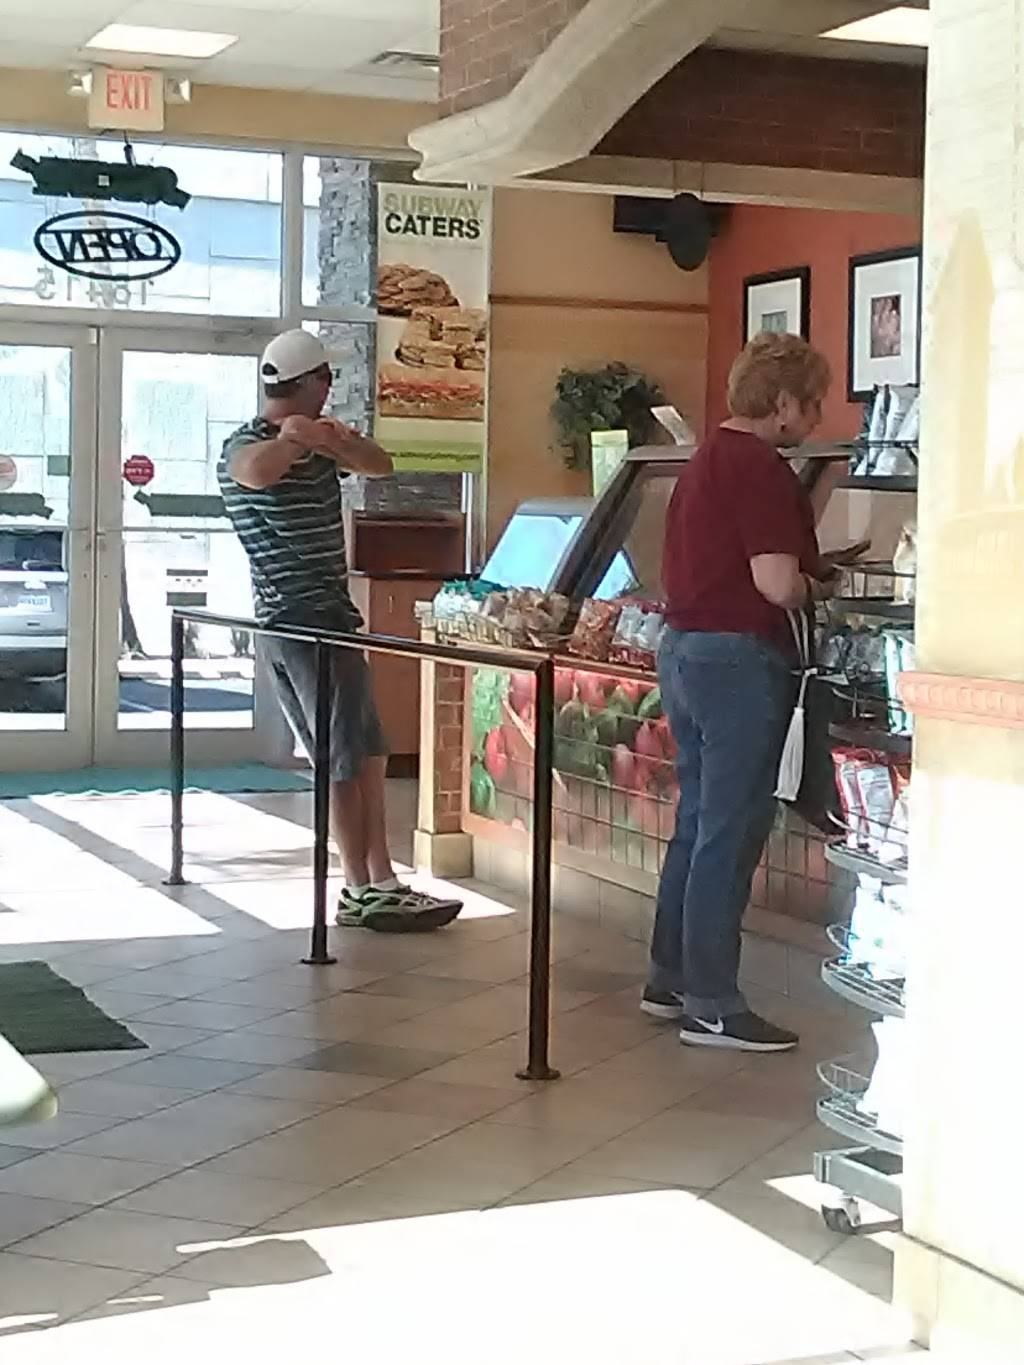 Subway Restaurants   restaurant   18419 US Highway 19 North, Unit B, Bellair Commons, Clearwater, FL 33764, USA   7275385380 OR +1 727-538-5380